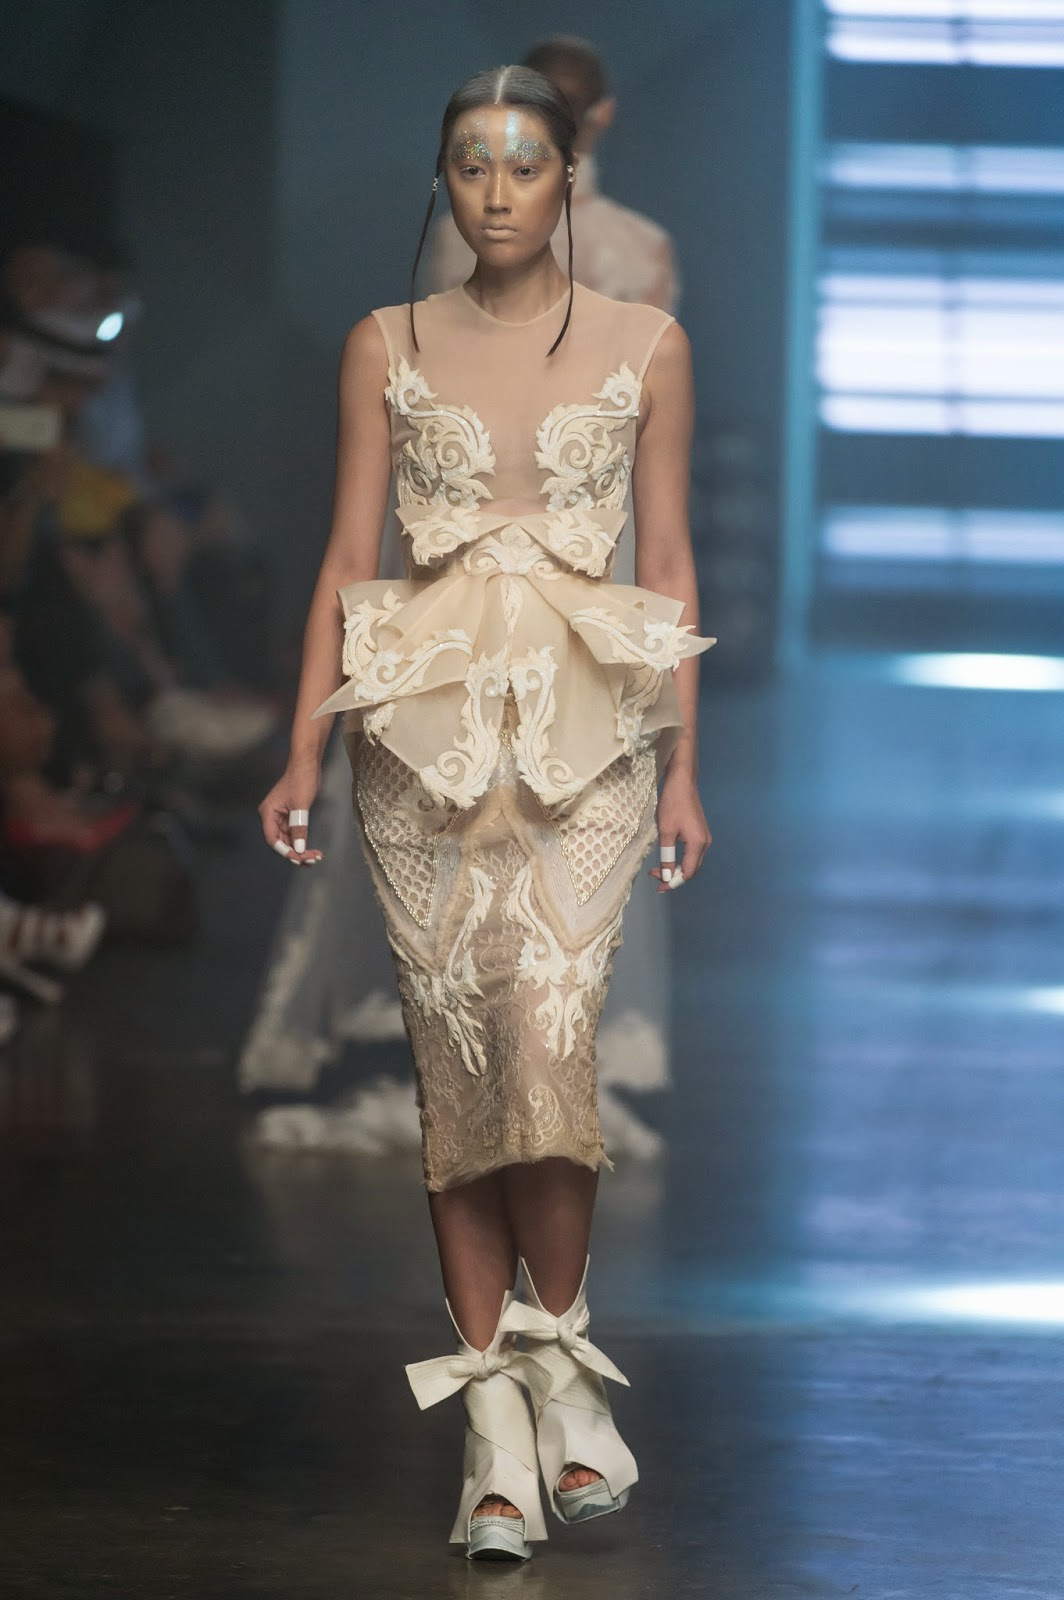 Amato spring summer 2015, furne amato, amato by furne one, furne amato spring summer, amato ss15, Amato, Amato haute couture, fashion week,  Art Hearts Fashion, Mercedes Benz Fashion Week 2014, du dessin aux podiums, dudessinauxpodiums, vintage look, dress to impress, dress for less, boho, unique vintage, alloy clothing, venus clothing, la moda, spring trends, tendance, tendance de mode, blog de mode, fashion blog,  blog mode, mode paris, paris mode, fashion news, designer, fashion designer, moda in pelle, ross dress for less, fashion magazines, fashion blogs, mode a toi, revista de moda, vintage, vintage definition, vintage retro, top fashion, suits online, blog de moda, blog moda, ropa, asos dresses, blogs de moda, dresses, tunique femme, vetements femmes, fashion tops, womens fashions, vetement tendance, fashion dresses, ladies clothes, robes de soiree, robe bustier, robe sexy, sexy dress, amato by furne one haute couture, amato by furne one spring summer, dubai fashion, fashion forward, MBFW, amato fragrance